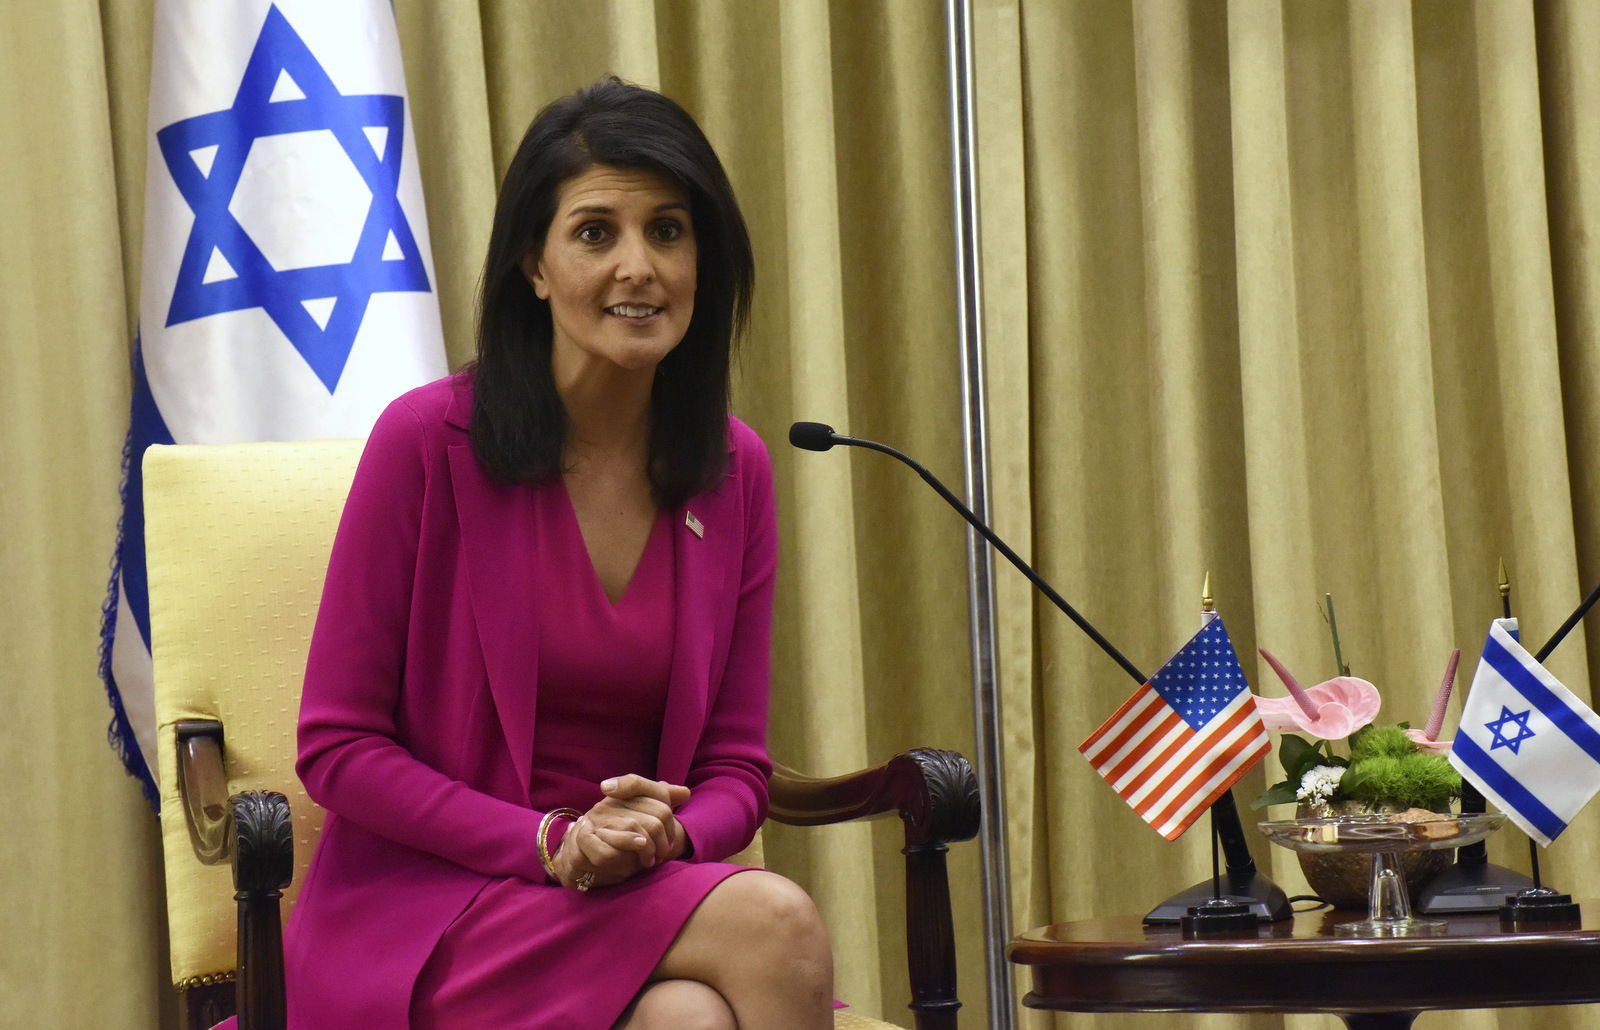 U.S. Ambassador to the United Nations Nikki Haley speaks during a meeting with Israeli President Reuven Rivlin, not seen, in his residence in Jerusalem, Israel, June 7, 2017. (Debbie Hill/AP)